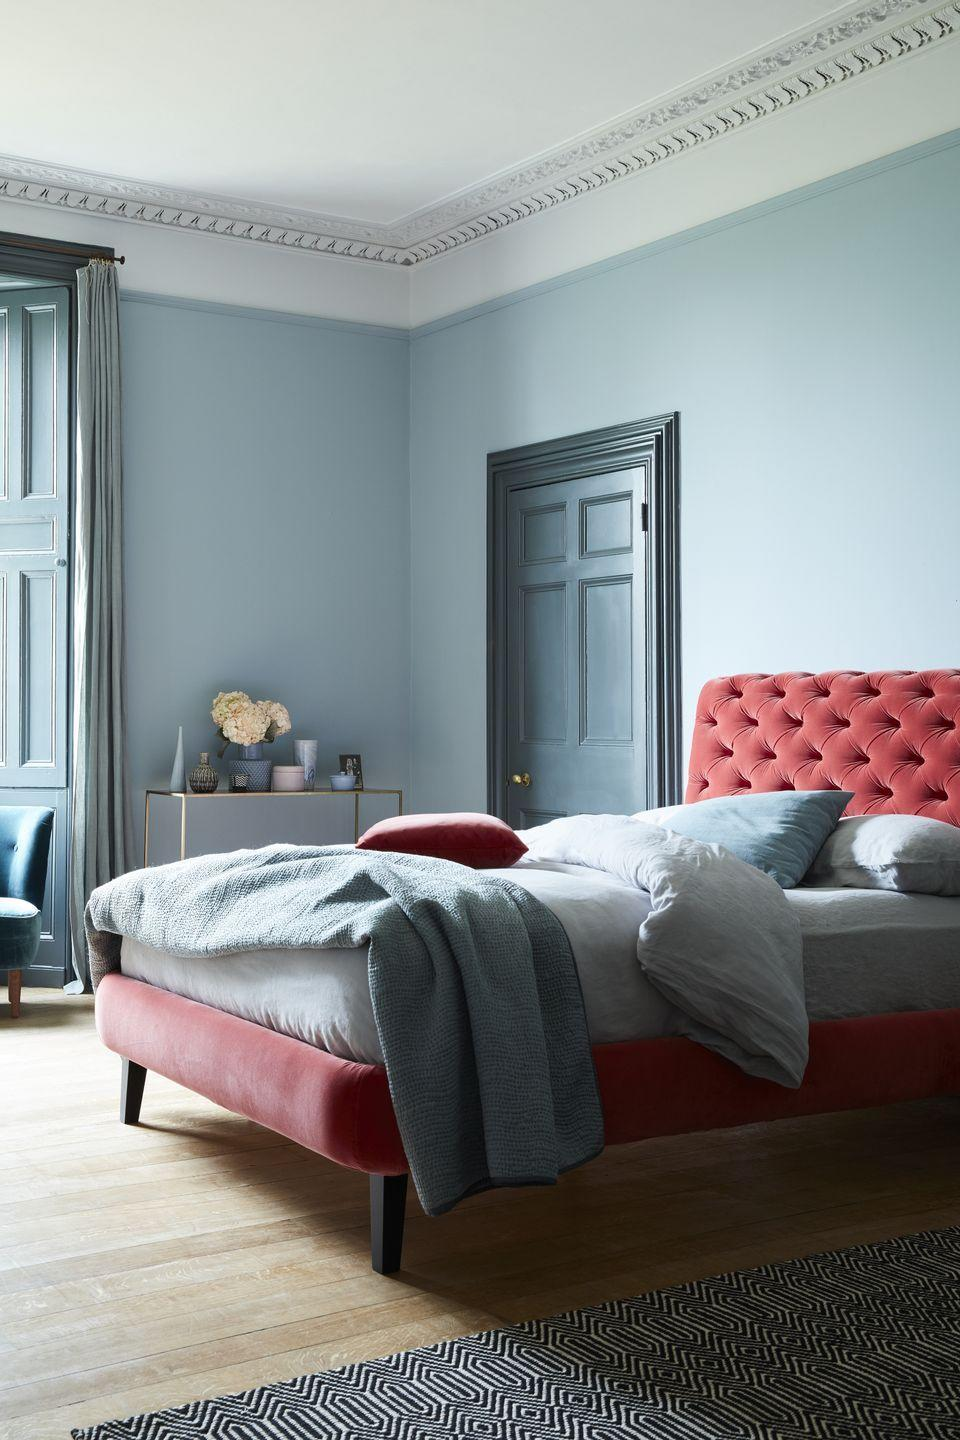 """<p>These are perfectly complementary colours according to the colour wheel. Use a calming blue as your dominant colour – especially in a space like your bedroom or home office – and add a dusty rose as your accent. A third match here would be splashes of buttercup yellow. </p><p>Pictured: <a href=""""https://go.redirectingat.com?id=127X1599956&url=https%3A%2F%2Fwww.sofa.com%2Fgb%2Fbeds%2Fknightsbridge-without-footboard-bed%2Fp%2FBLKNN220CMVDUS&sref=https%3A%2F%2Fwww.redonline.co.uk%2Finteriors%2Feasy-to-steal-ideas%2Fg37326104%2Fcolour-combinations%2F"""" rel=""""nofollow noopener"""" target=""""_blank"""" data-ylk=""""slk:Knightsbridge Double Bed In Dusty Rose Velvet at Sofa.com"""" class=""""link rapid-noclick-resp"""">Knightsbridge Double Bed In Dusty Rose Velvet at Sofa.com</a></p>"""